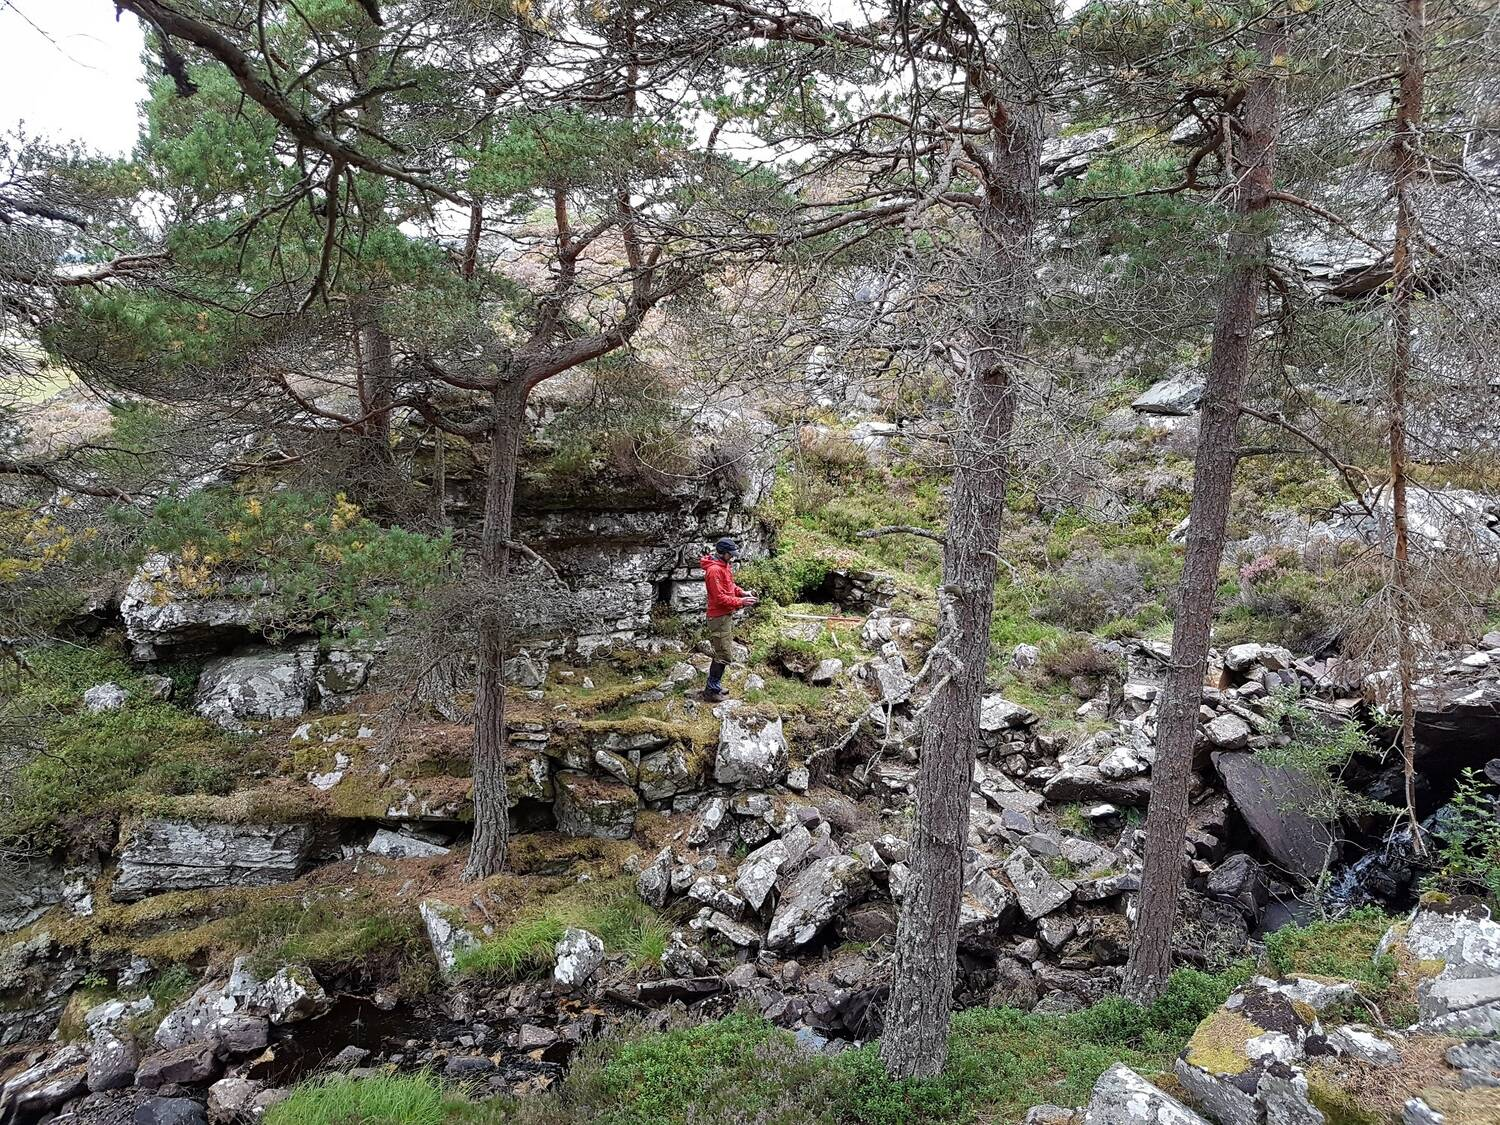 A man in wet weather gear stands in a rocky area beside a stream. Behind him are the almost covered stone remains of a walled structure. Tall pine trees grow in the area.